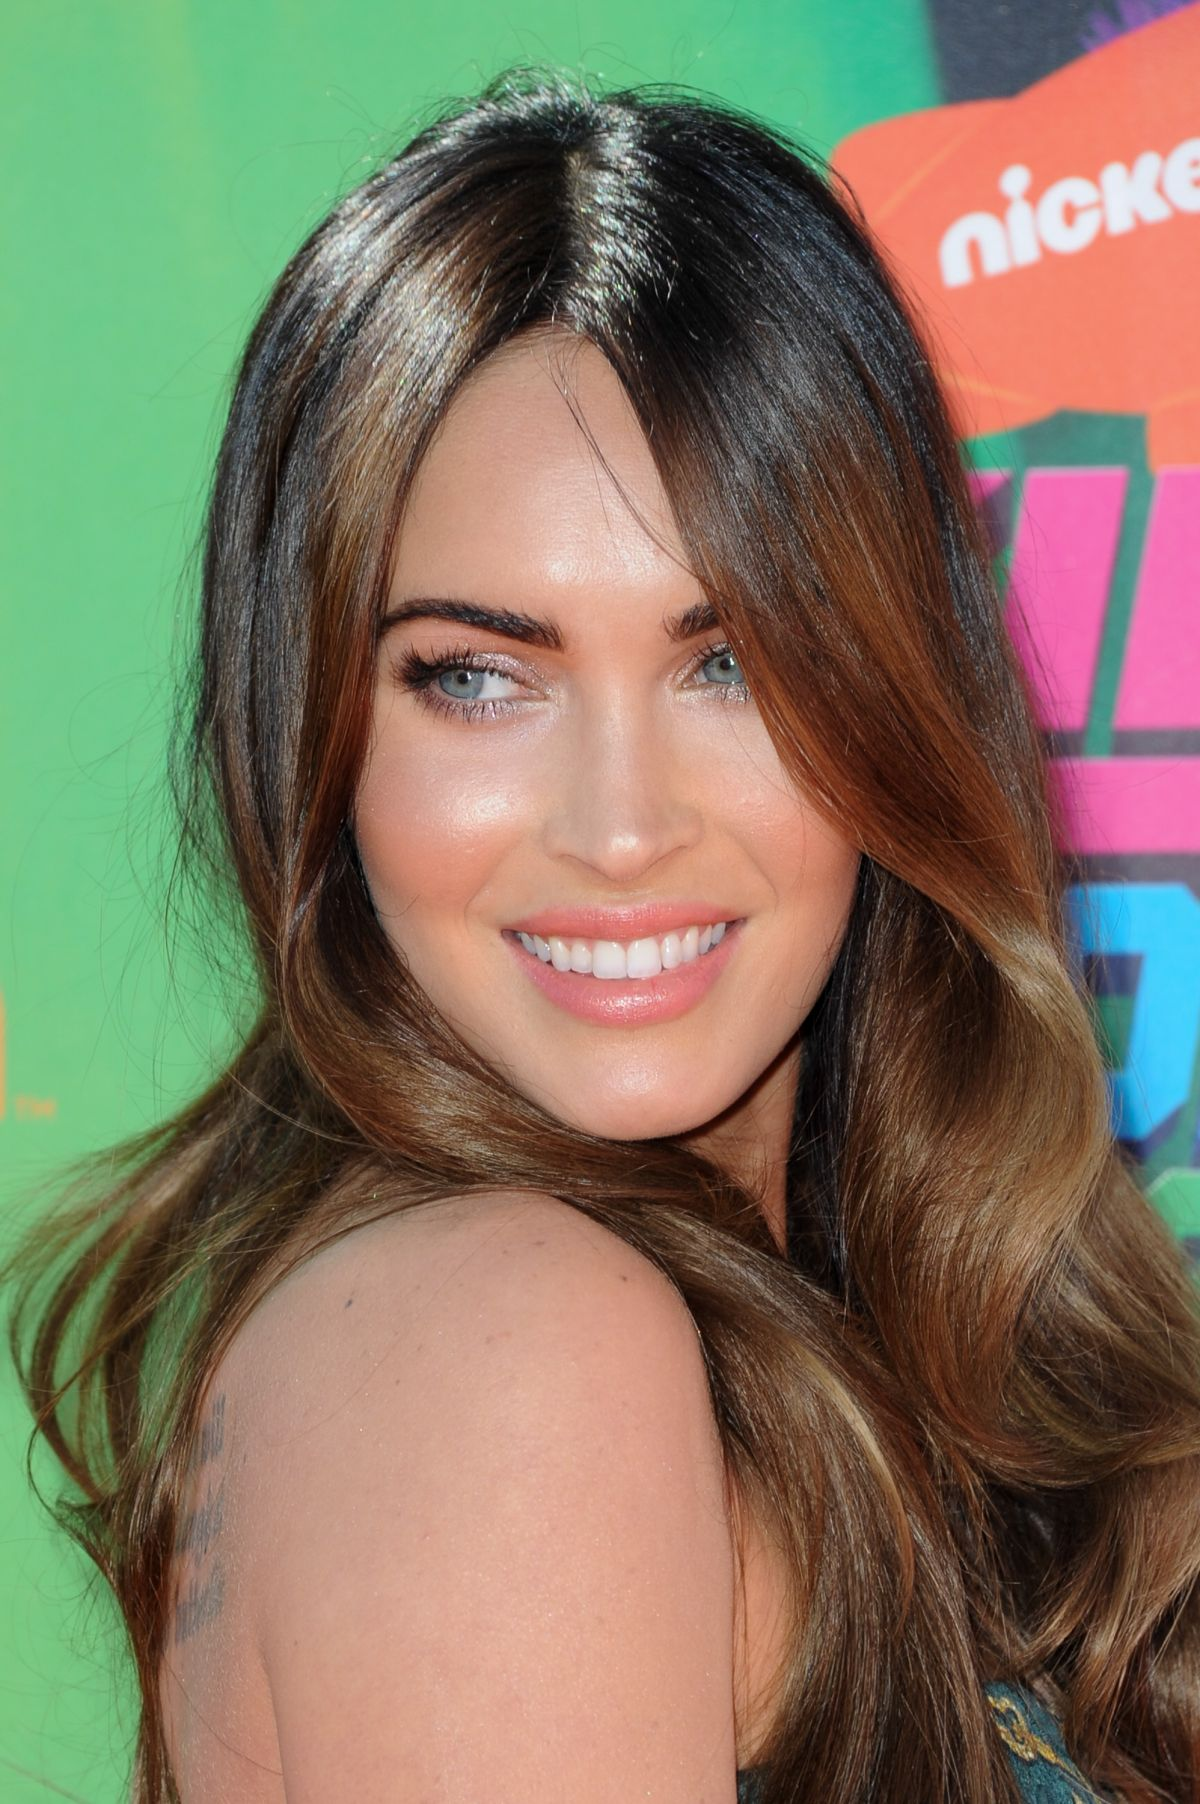 image - megan fox 2 | disney wiki | fandom poweredwikia